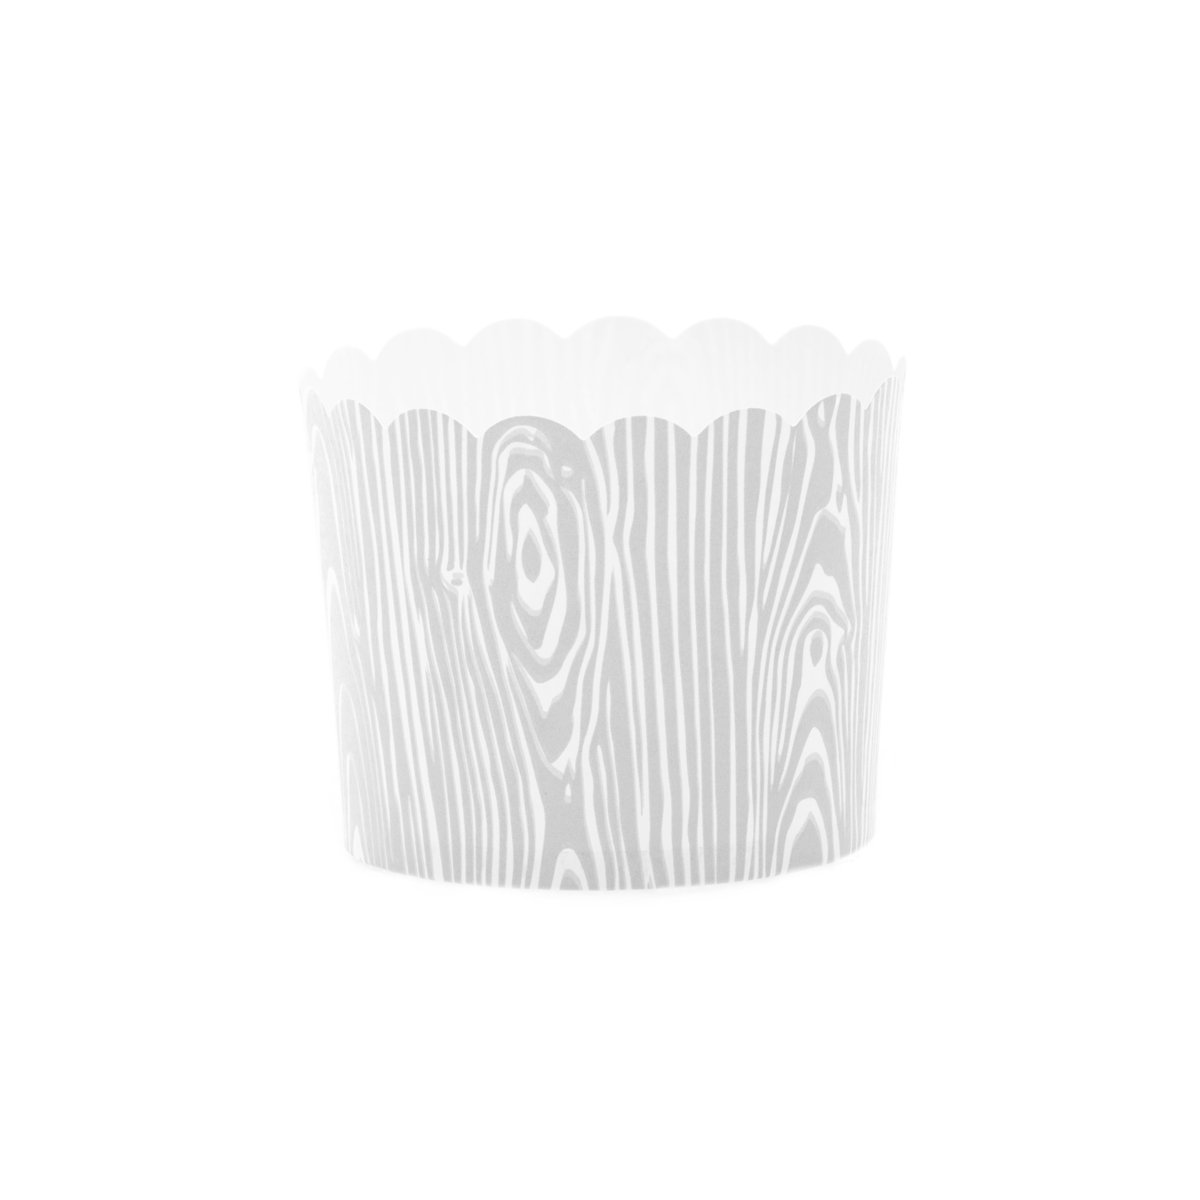 Simply Baked CLG-127C Paper Baking Cup, 500-Pack, Birch Faux Wood Grain by Simply Baked